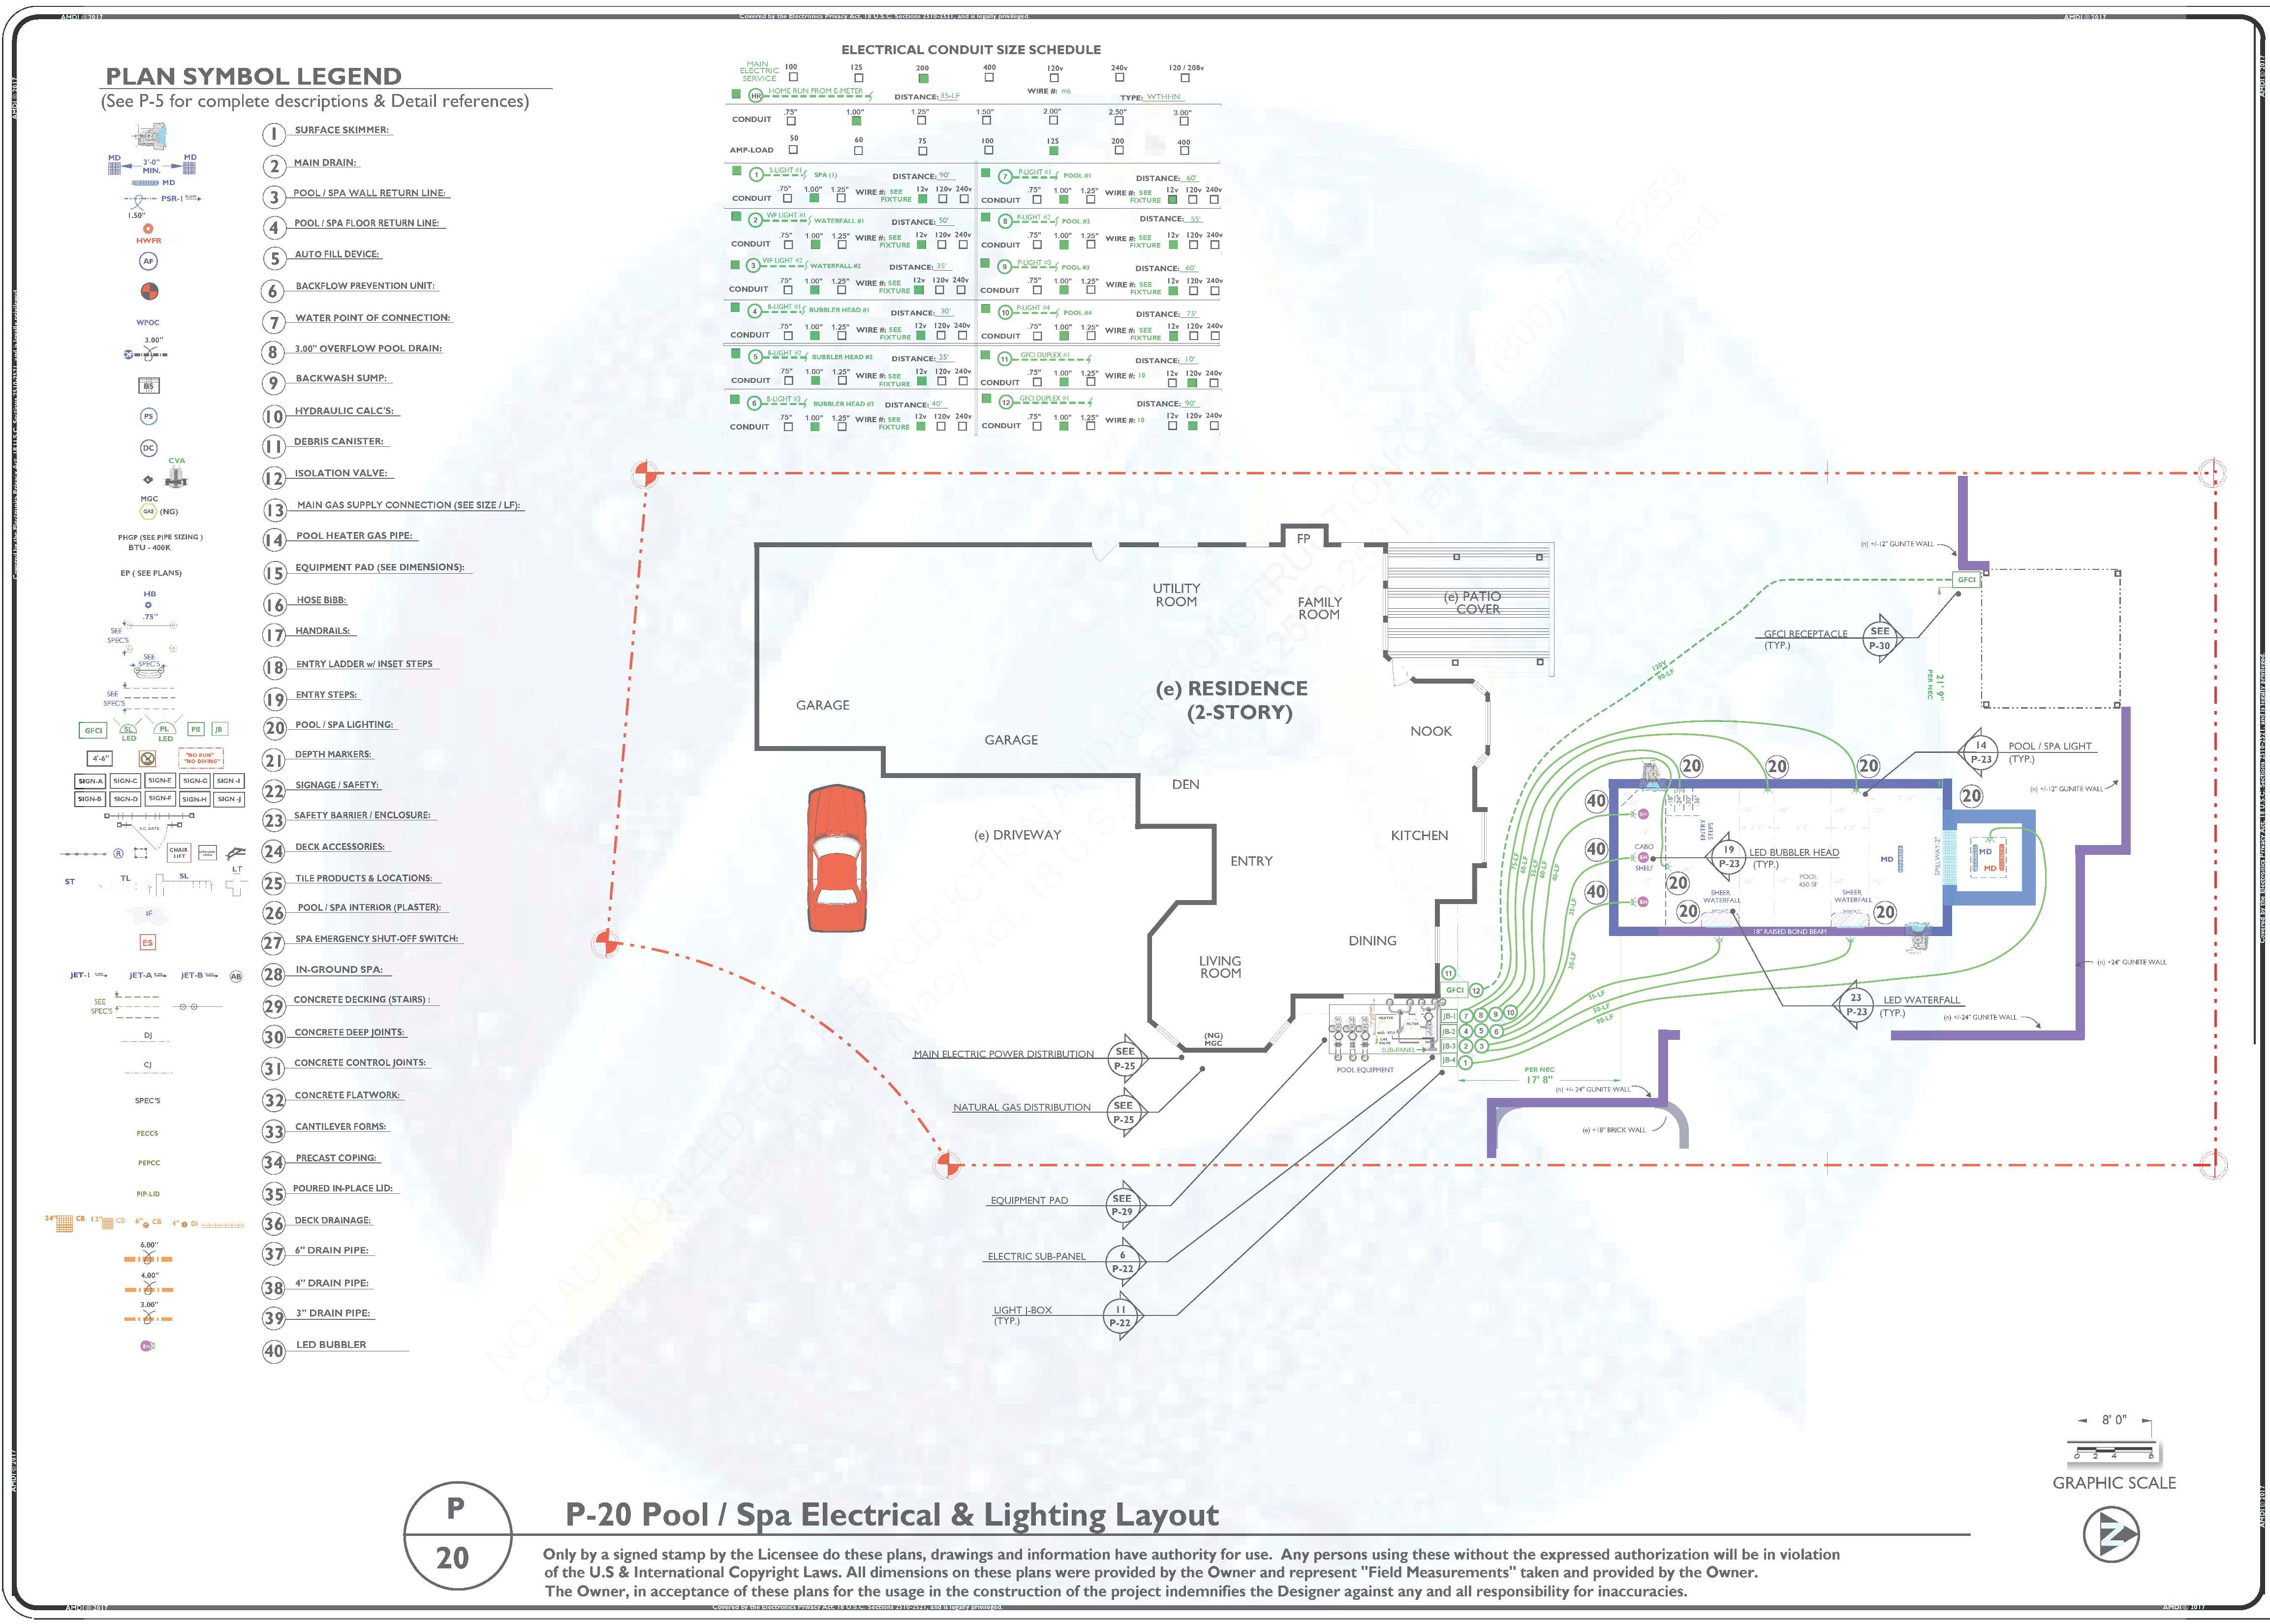 Sample Electrical / Lighting Plan